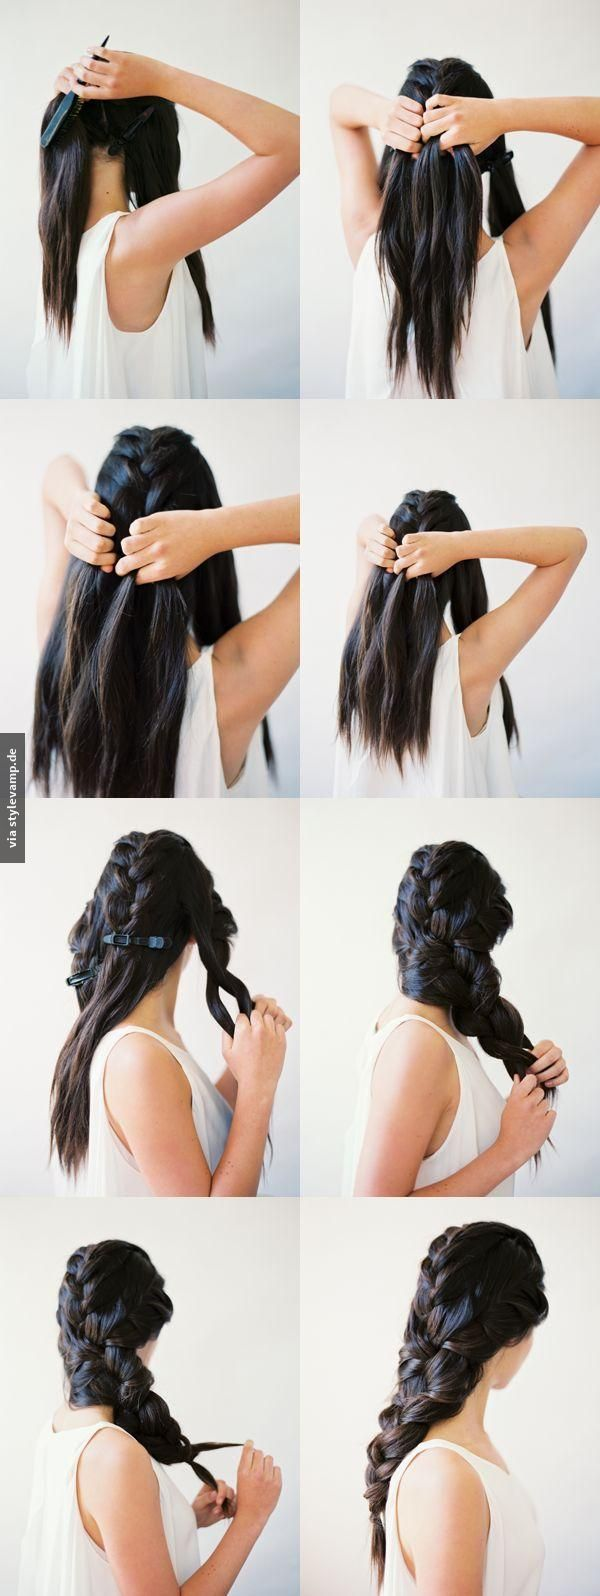 Should be easy for a braiding dummy like myself! :)